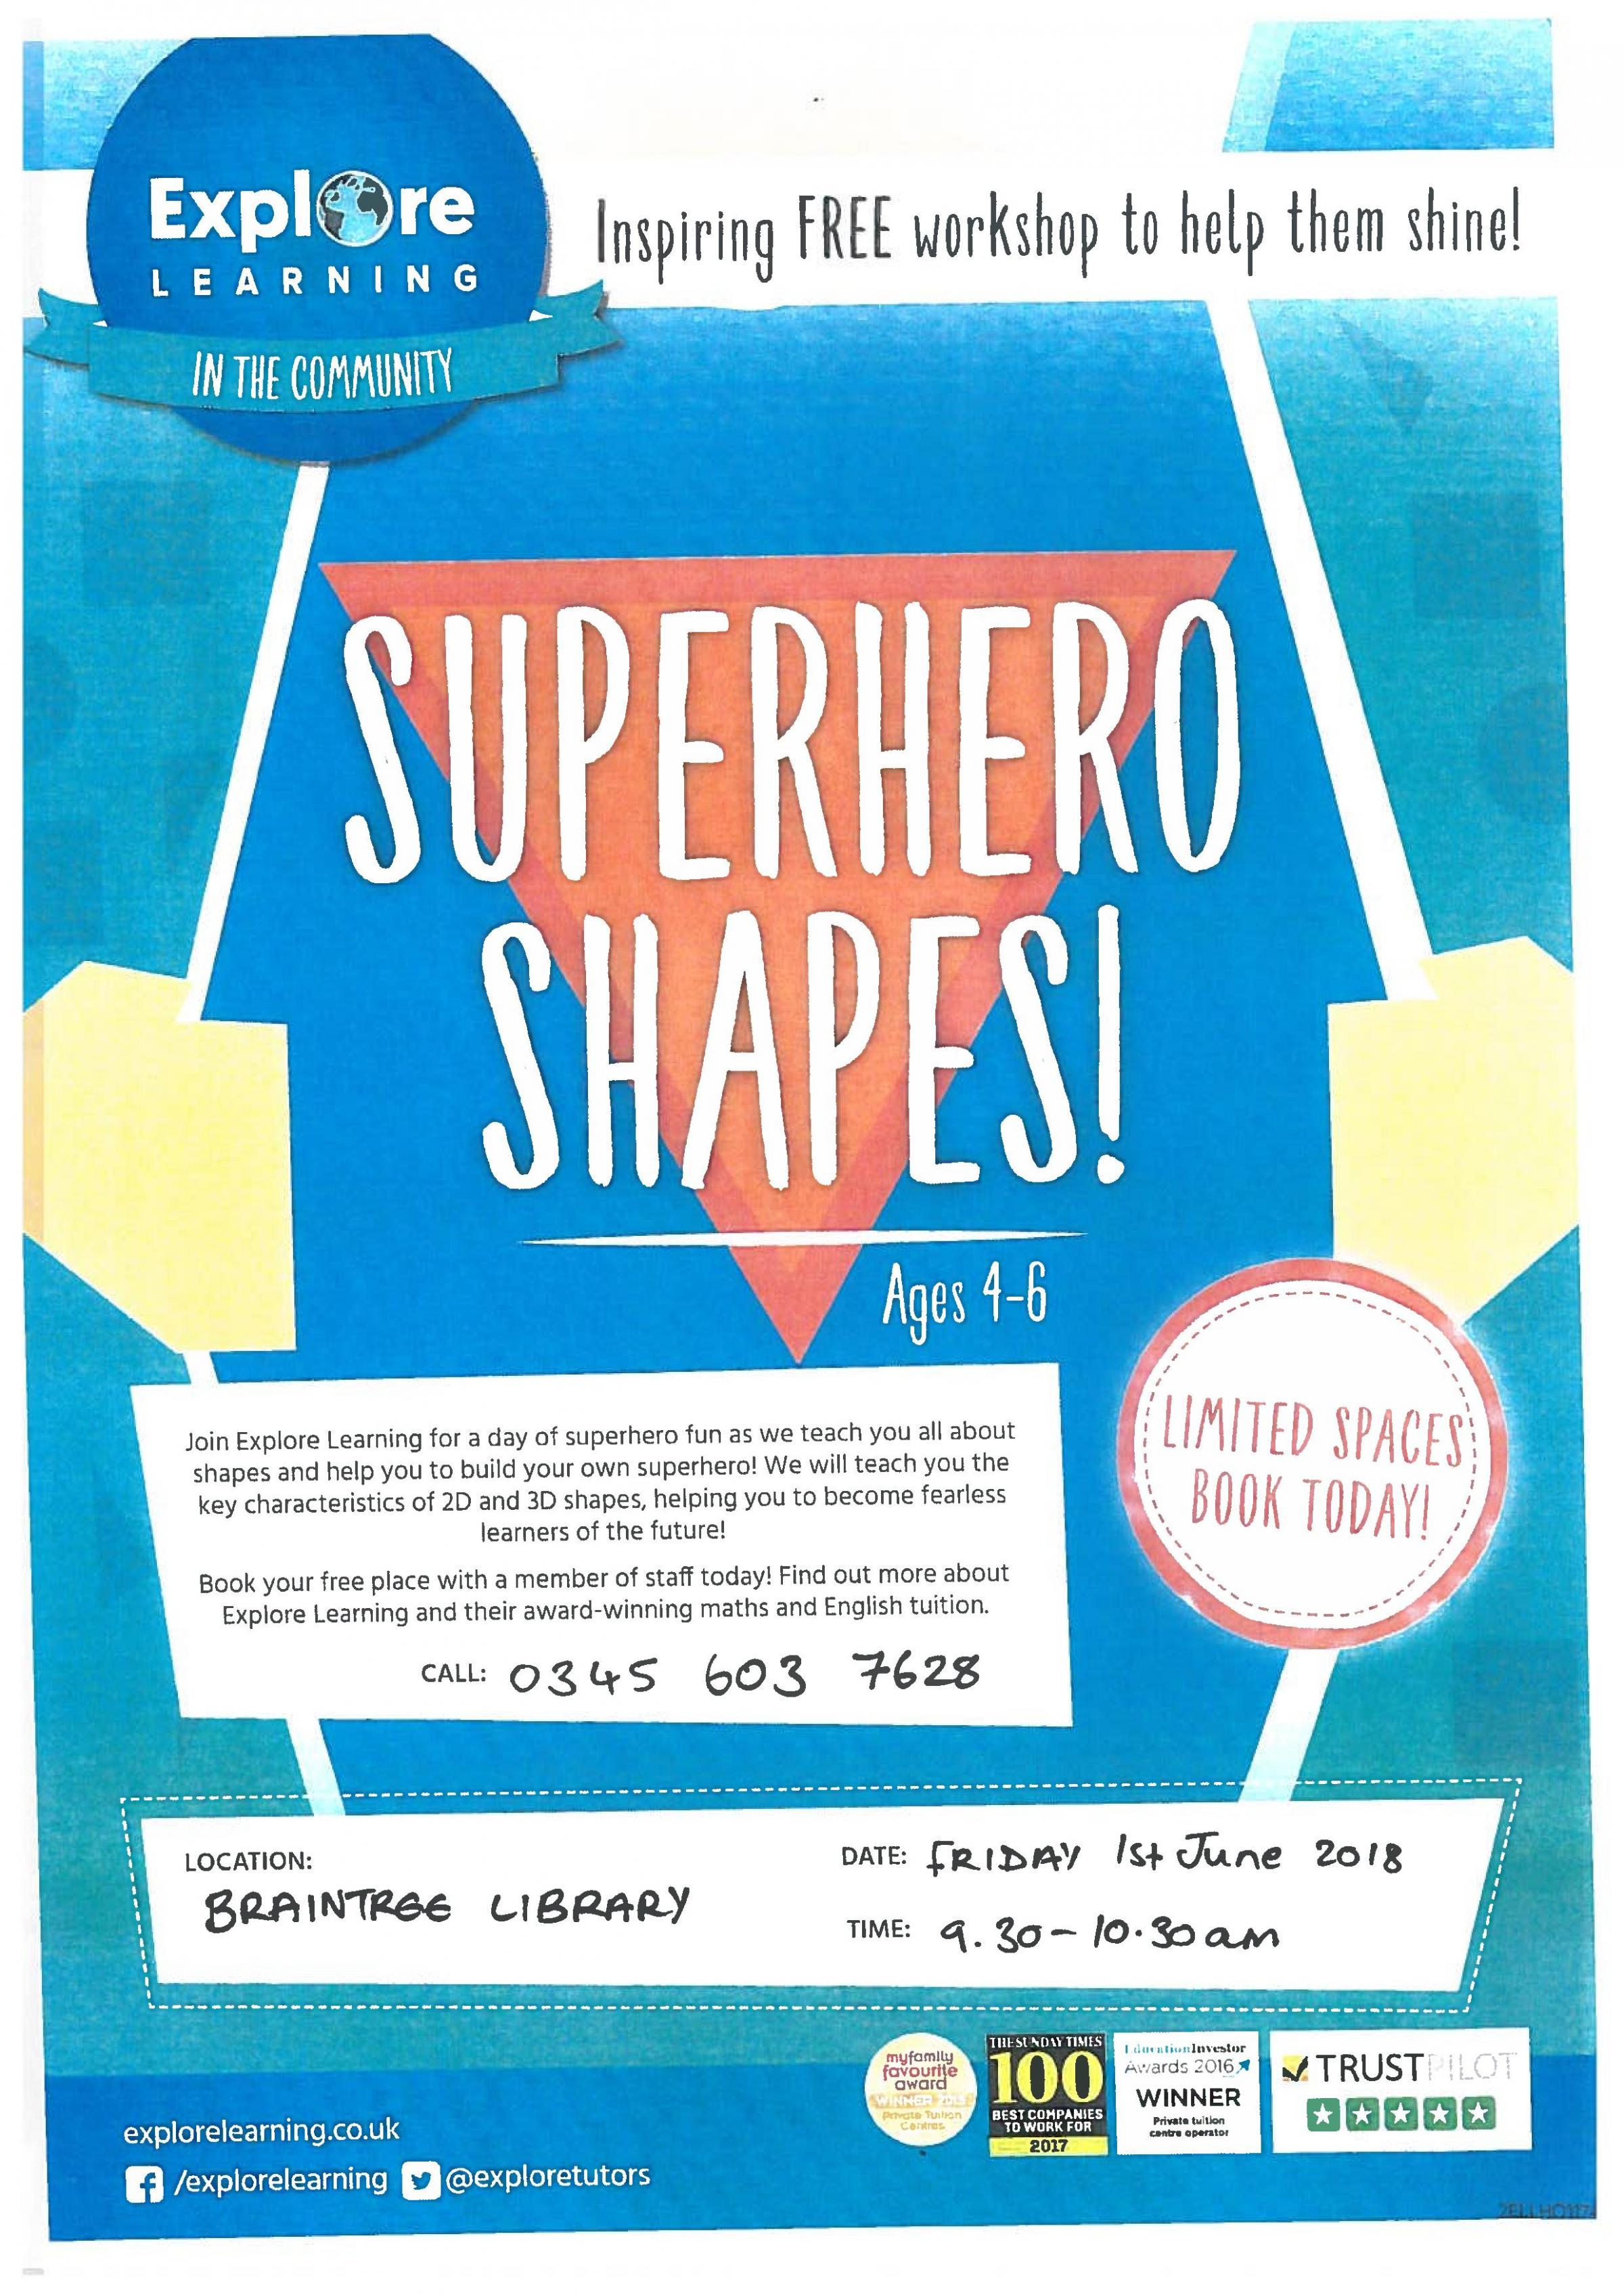 Explore Learning Workshop - Superhero Shapes!